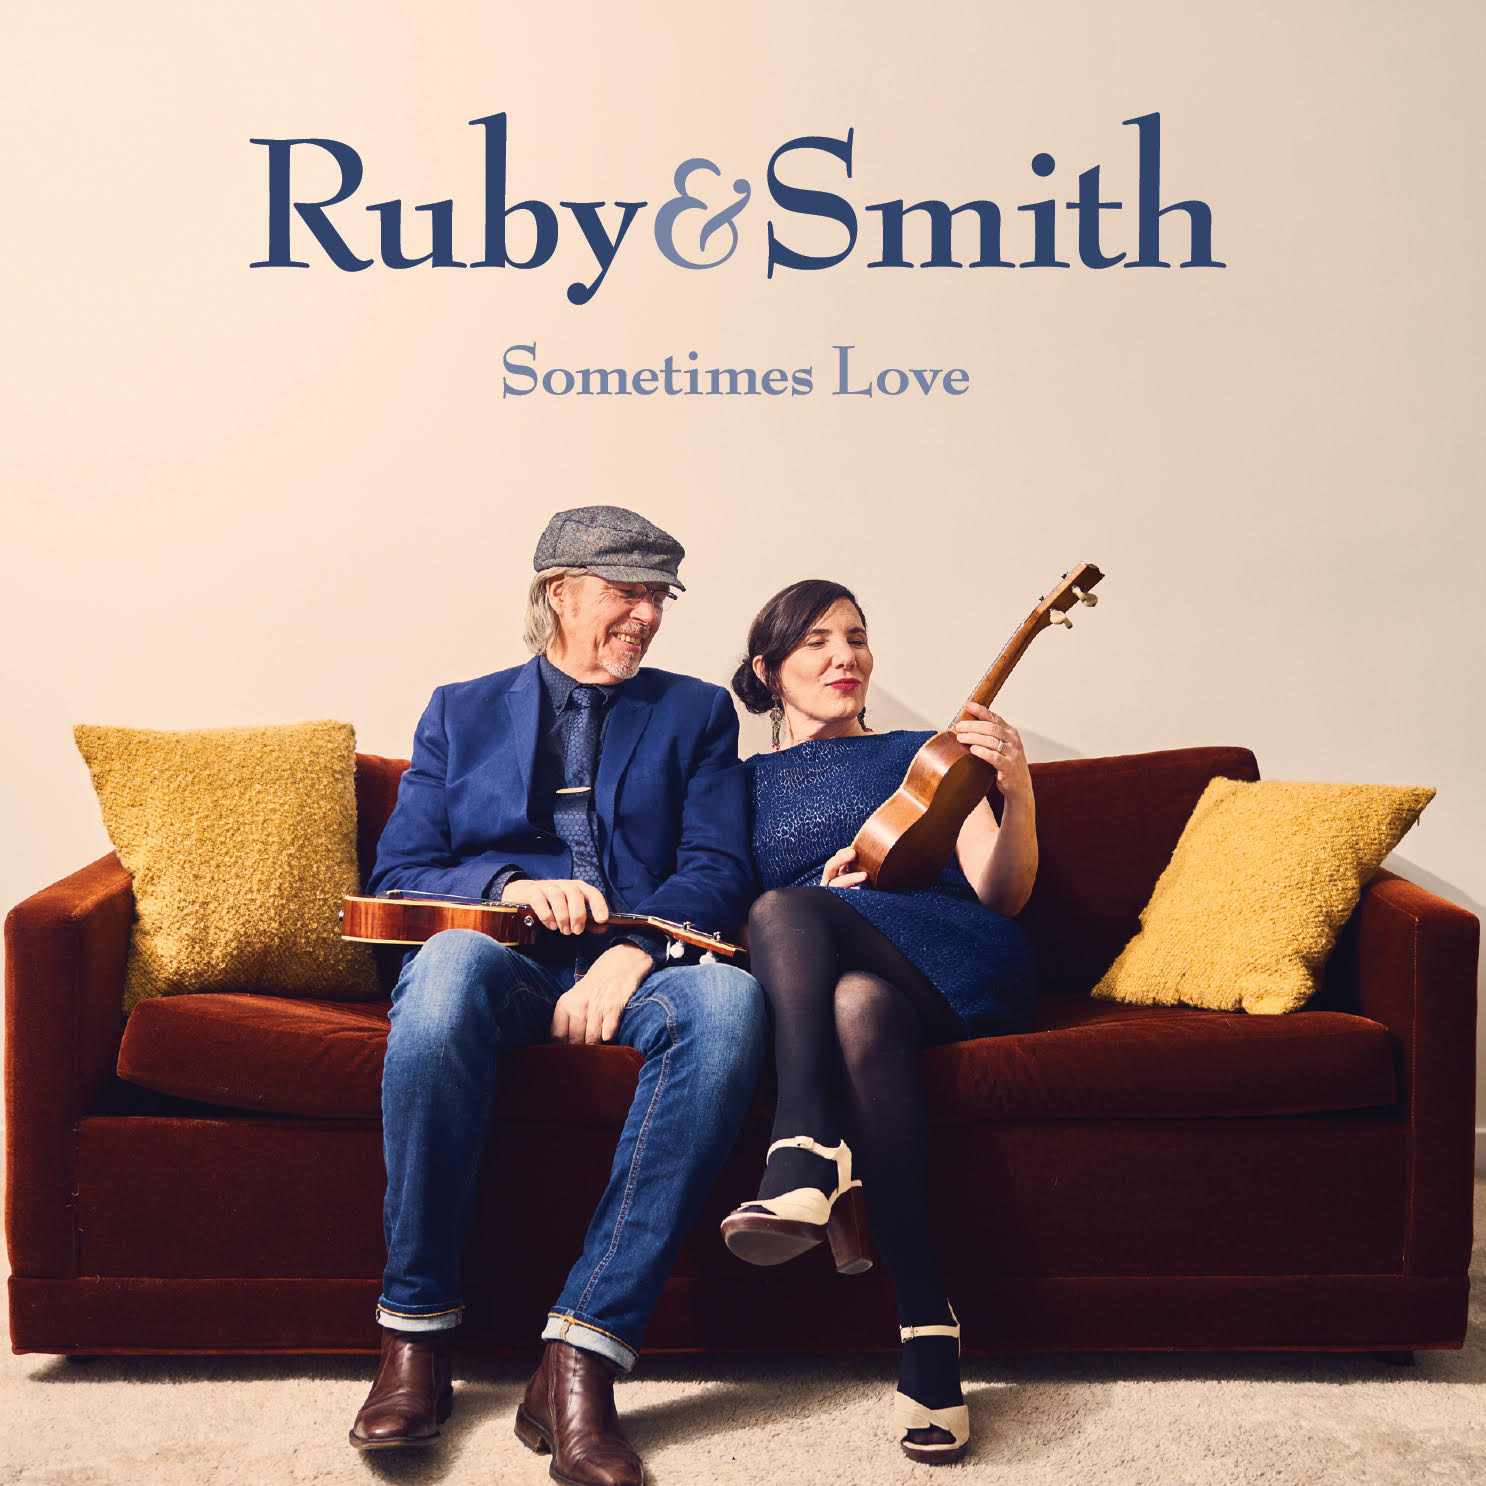 New Music Coming September 28 - Ruby & Smith are Vancouver's First Lady and Duke of Uke, Daphne Roubini and Andrew Smith, also known across Canada and beyond for their vintage jazz band Black Gardenia and Ruby's Ukes, the World's largest Ukulele School outside Hawaii. Sometimes Love is the new album coming this fall from Ruby & Smith.